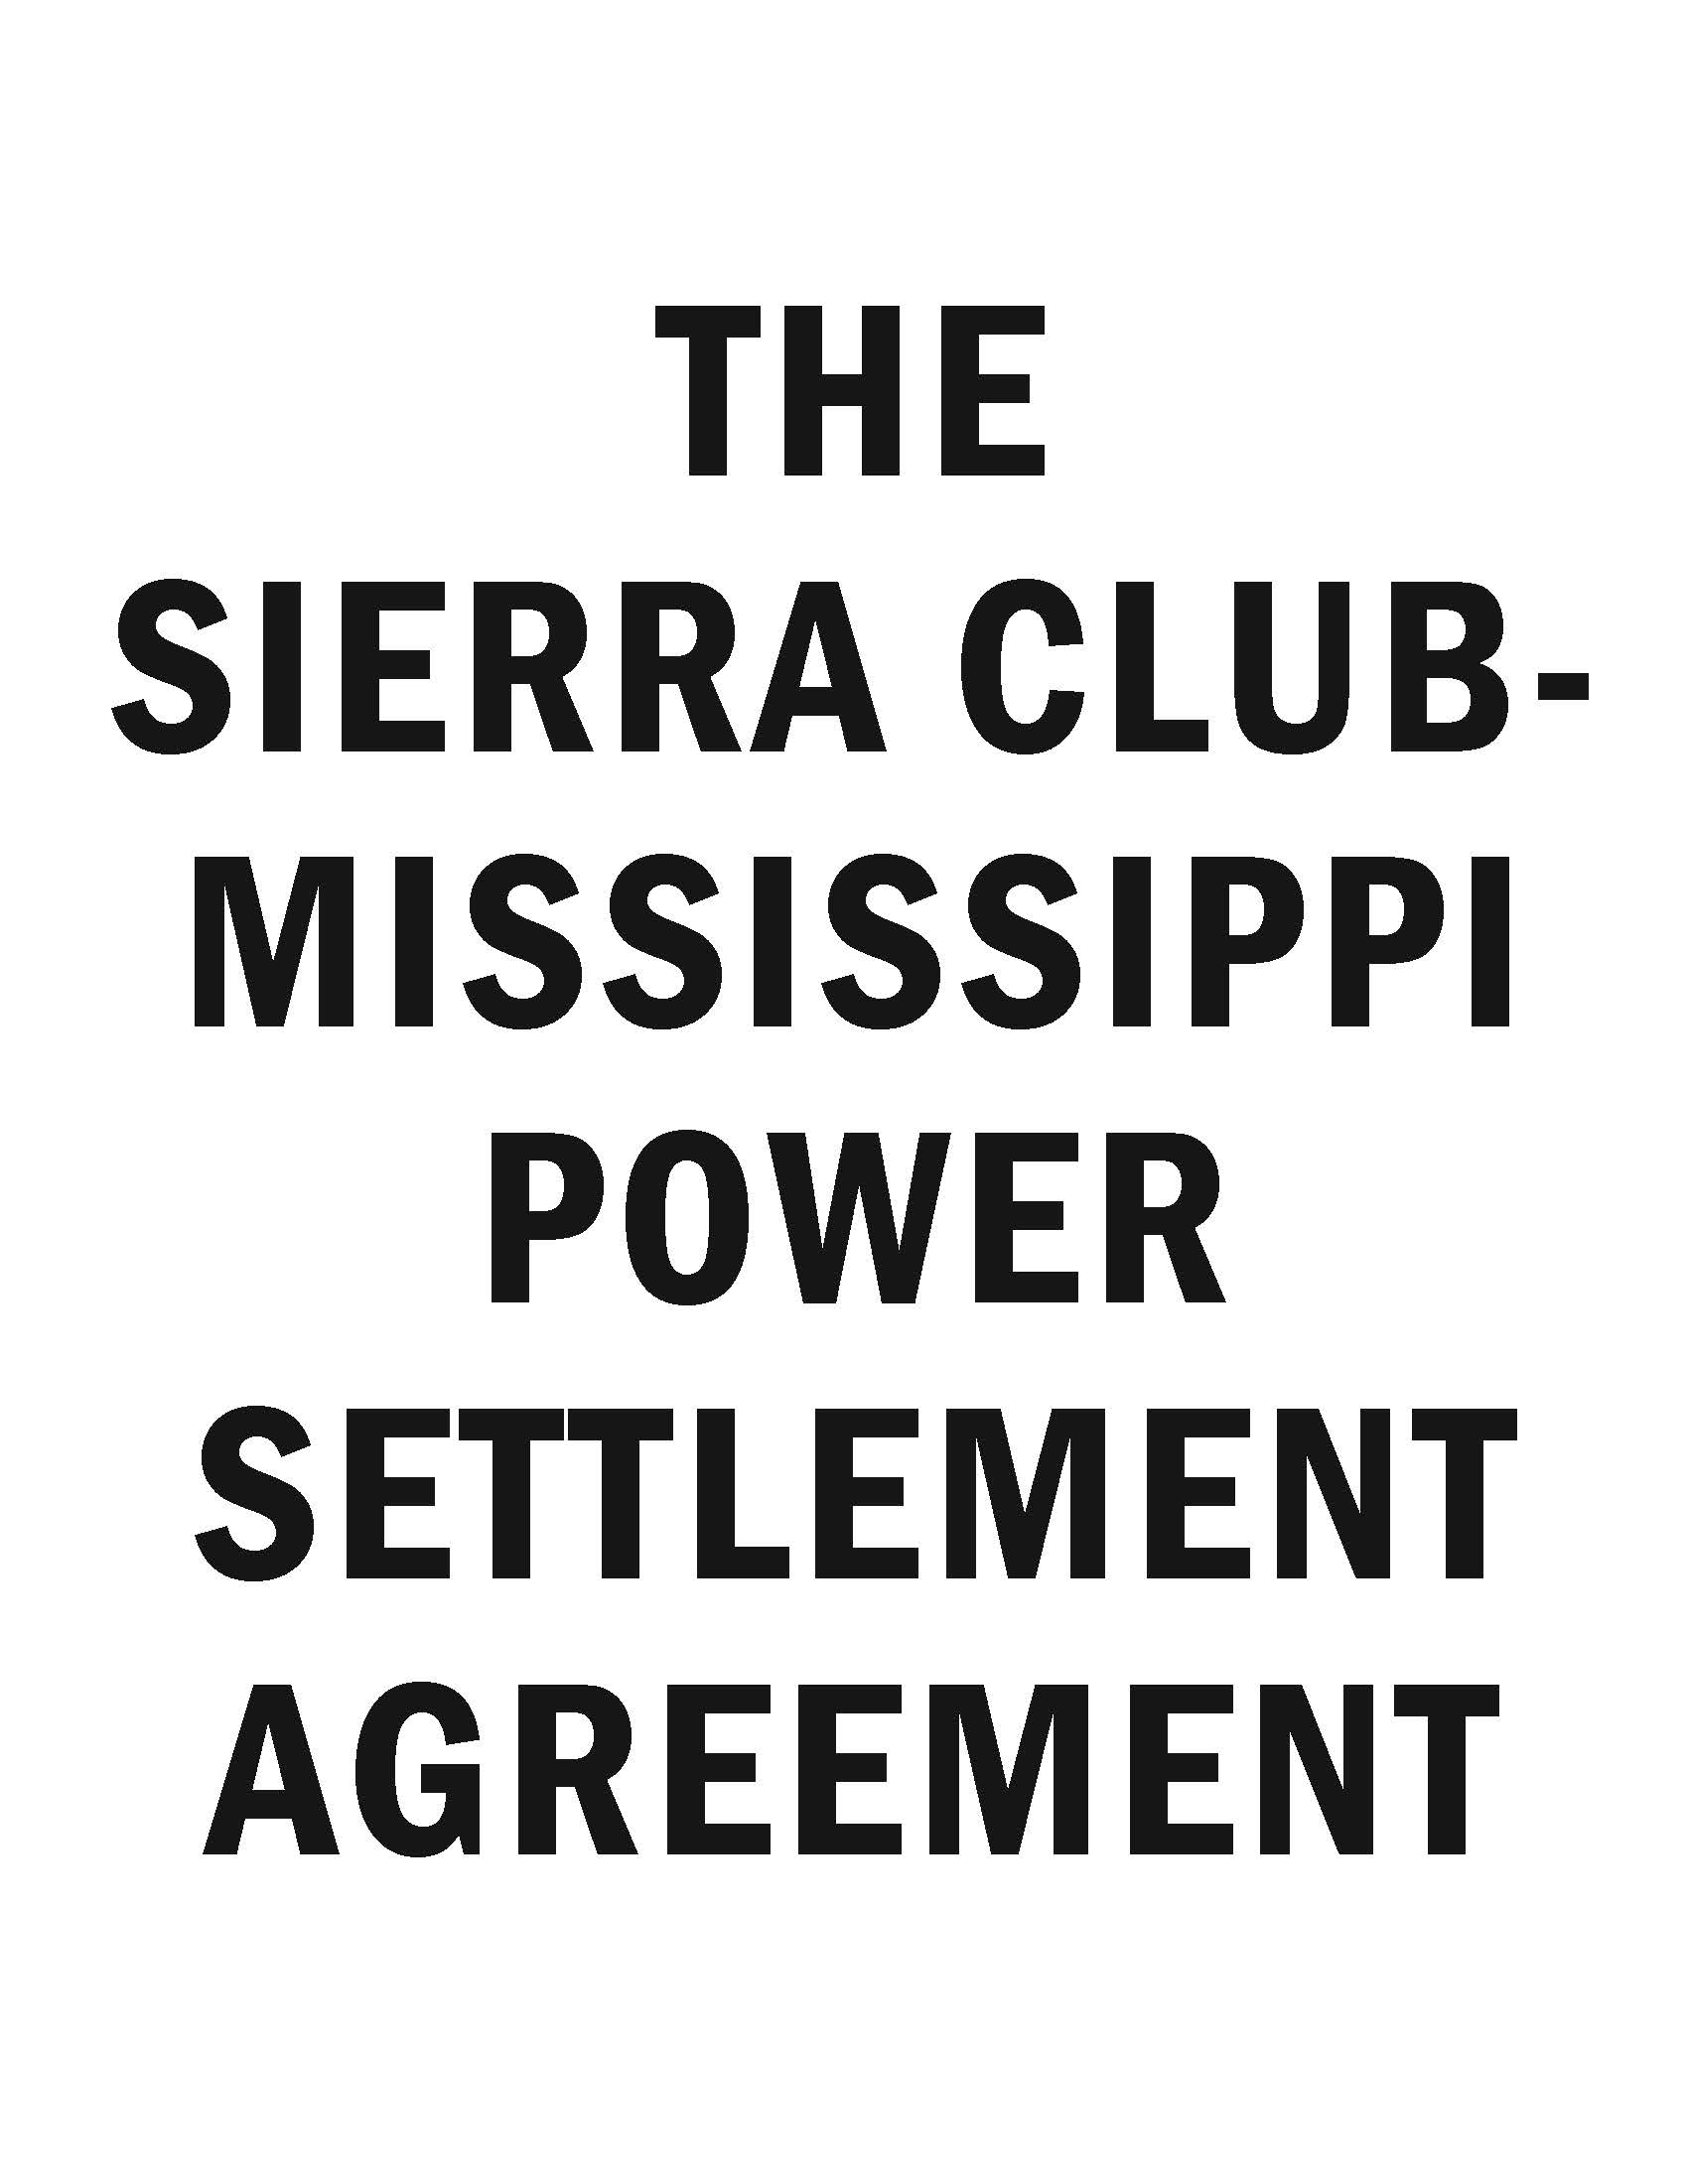 view the settlement between Mississippi Power and the Sierra Club